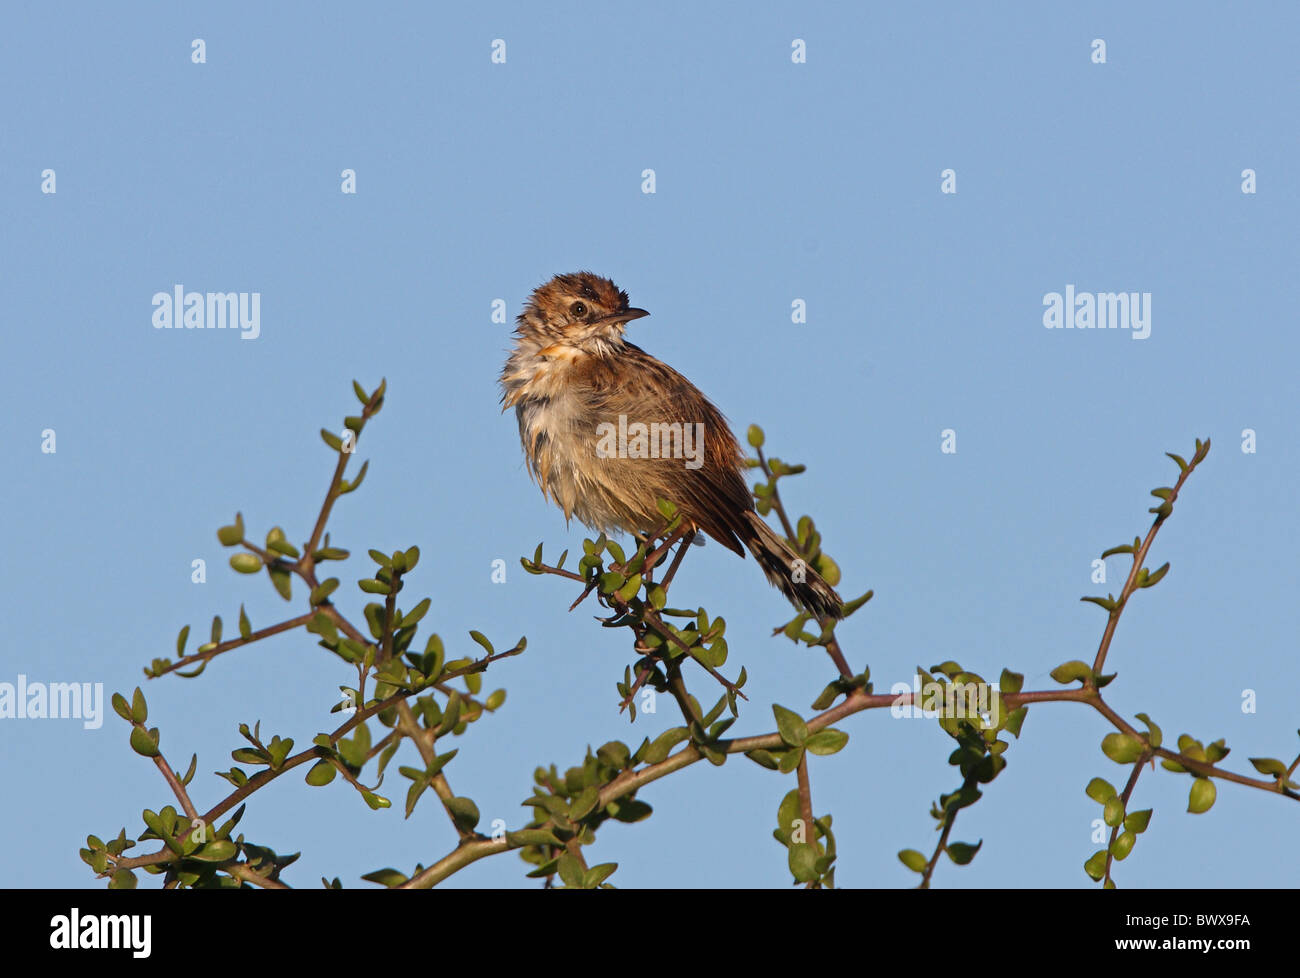 Fan-tailed Warbler (Cisticola juncidis cisticola) adult, wet after bathing, perched in bush, Morocco, may - Stock Image